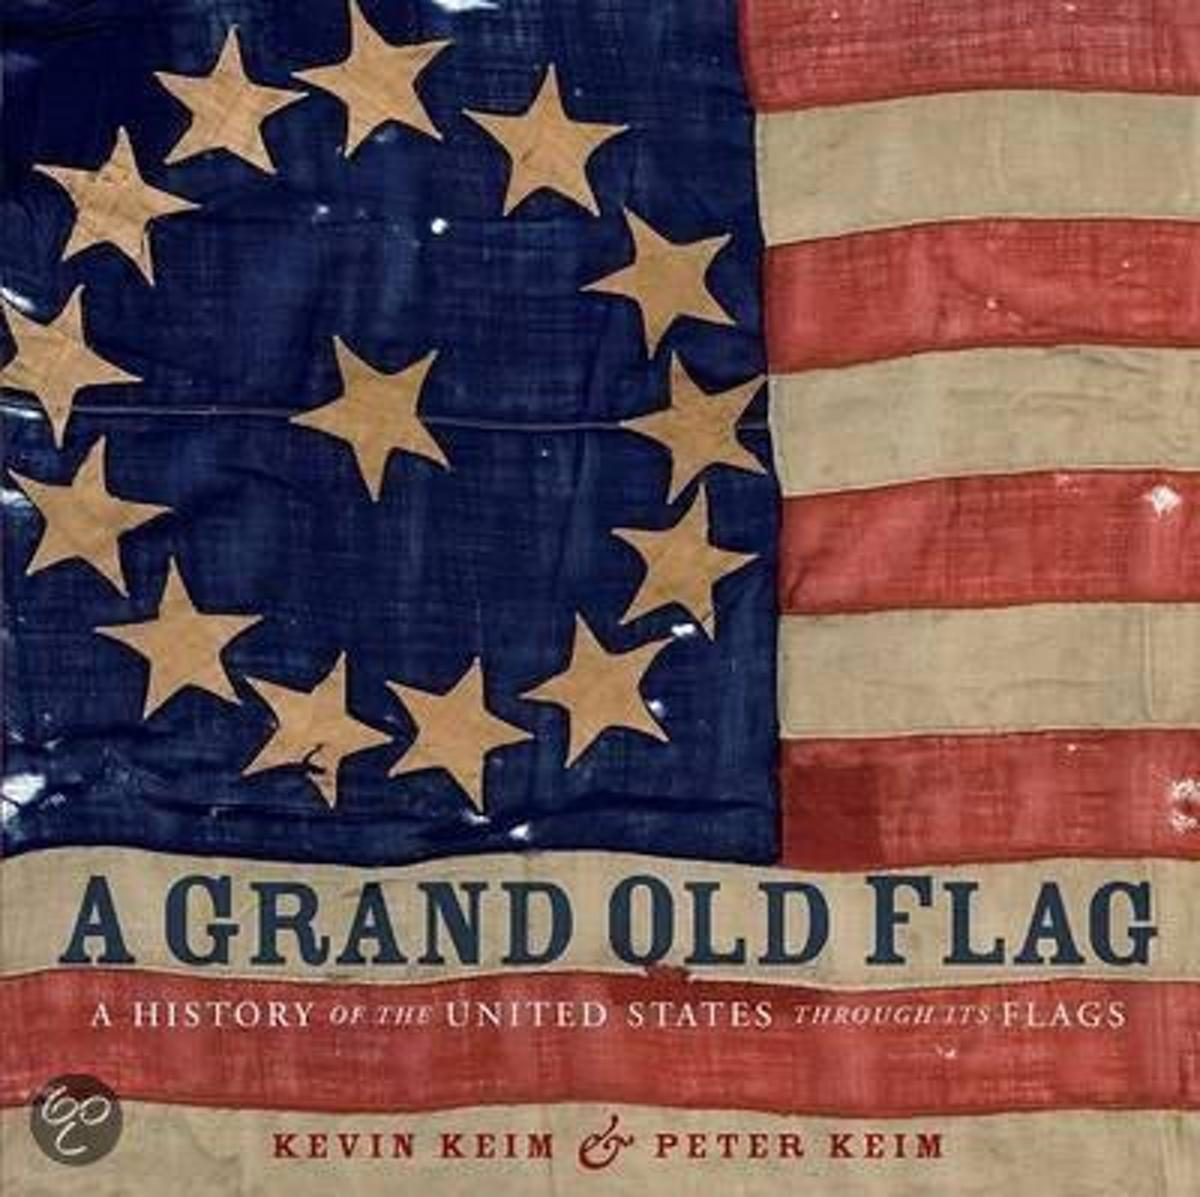 A Grand Old Flag